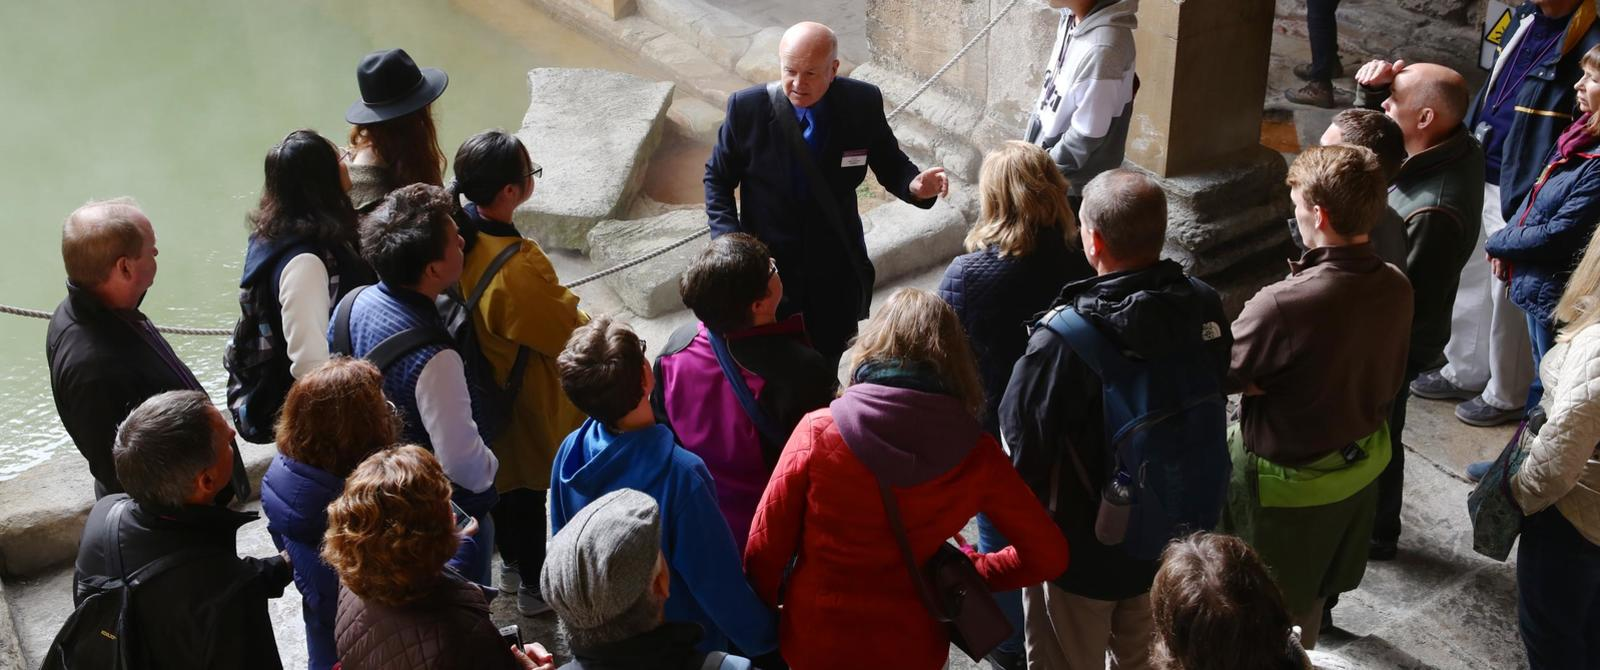 Image: A group taking part in a guided tour